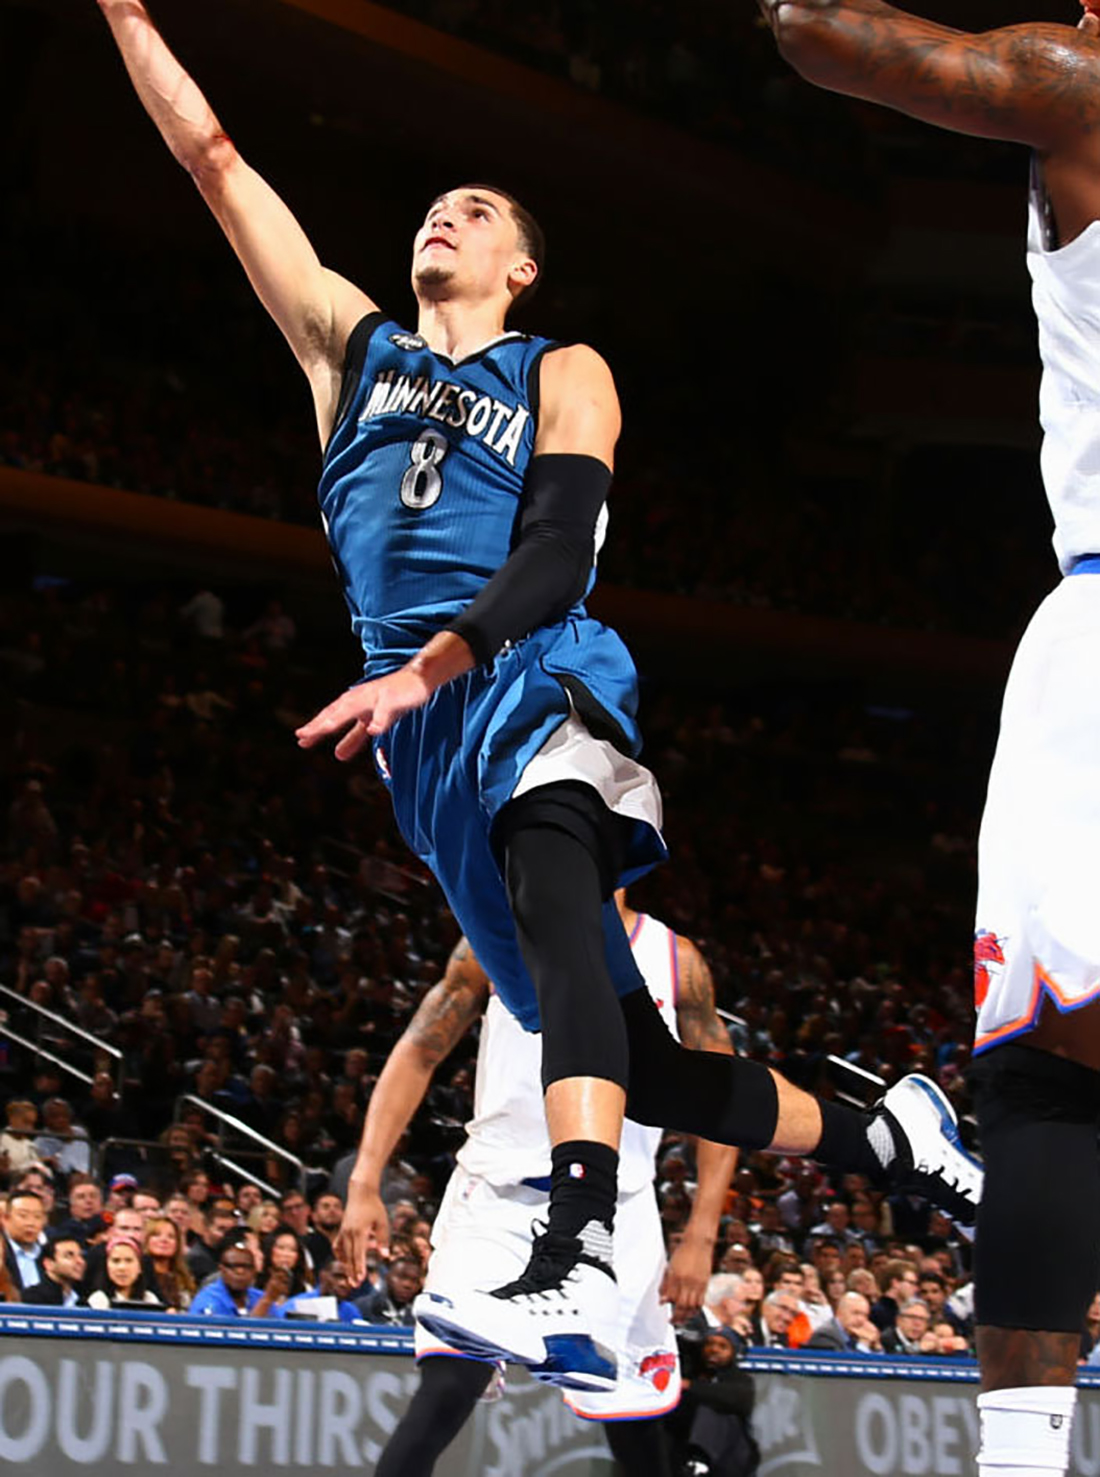 zach-lavine-air-jordan-17-college-blue-1